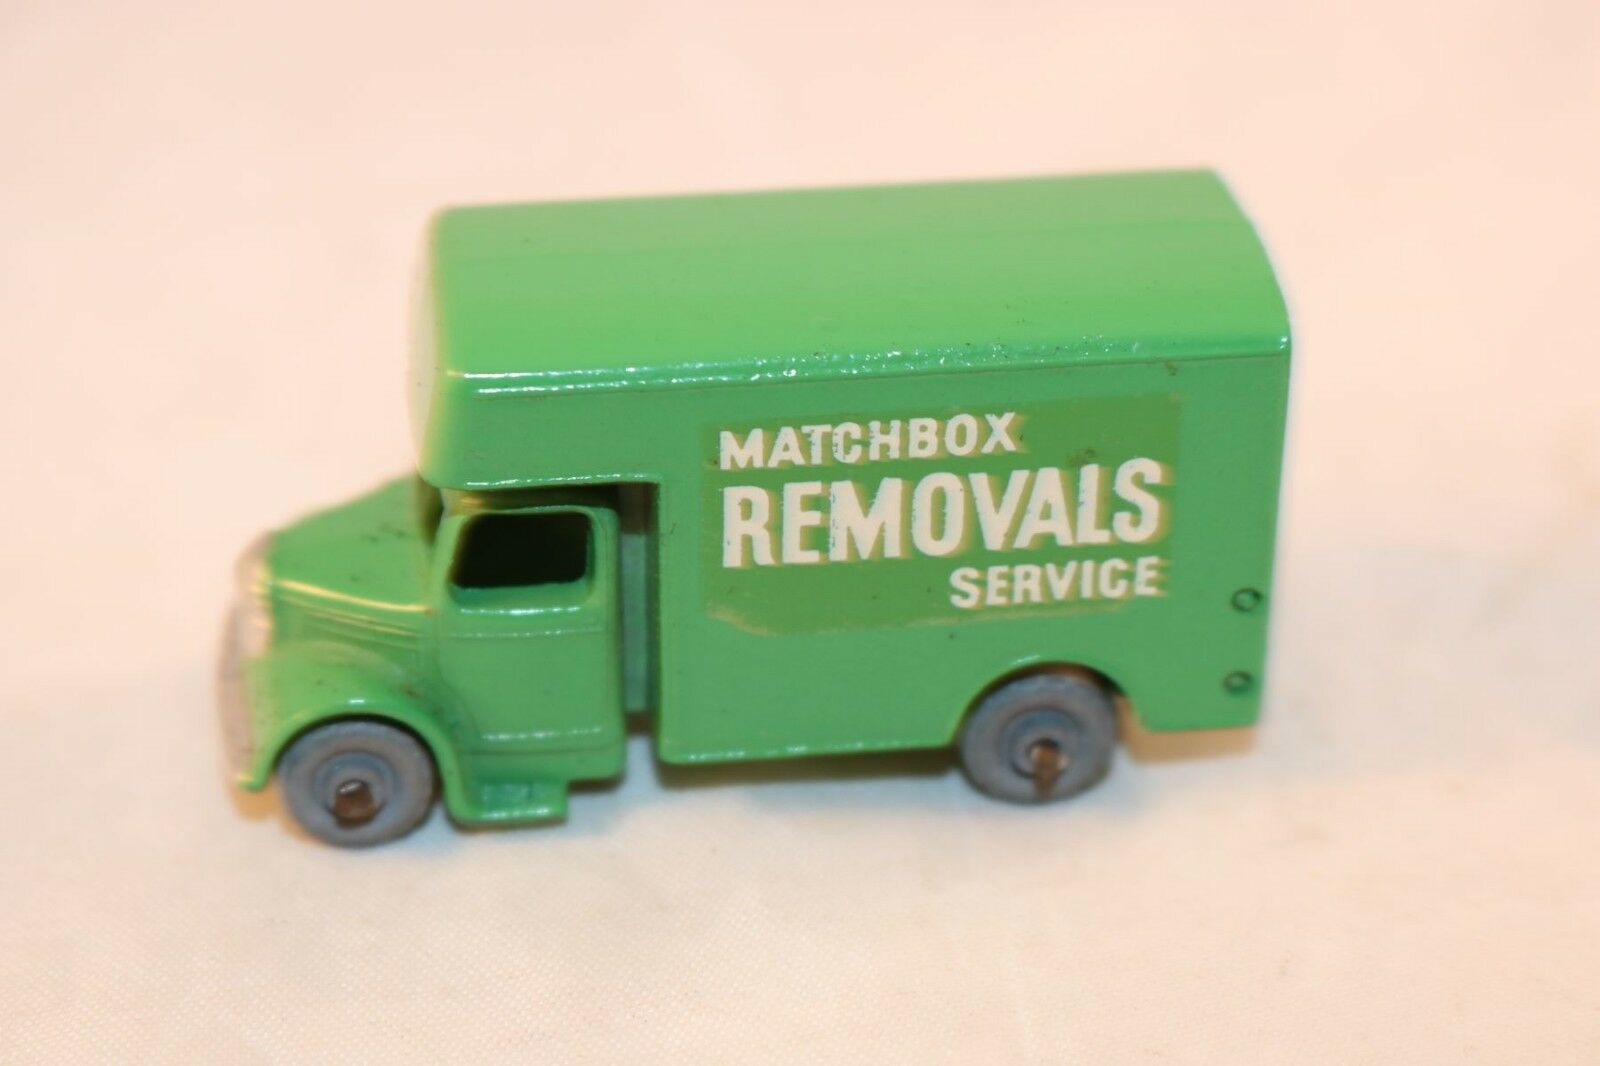 Matchbox Lesney Lesney Lesney No 17 Bedford Removals very near mint all original condition GMW 1f0bfe